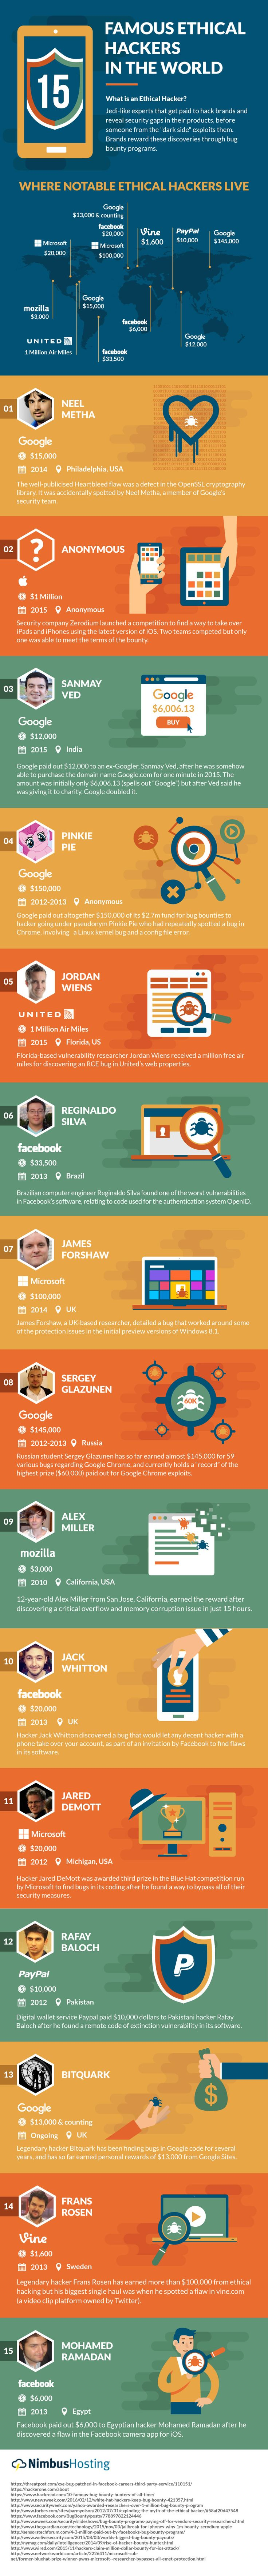 Famous Ethical Hackers In The World #Infographic #Hackers